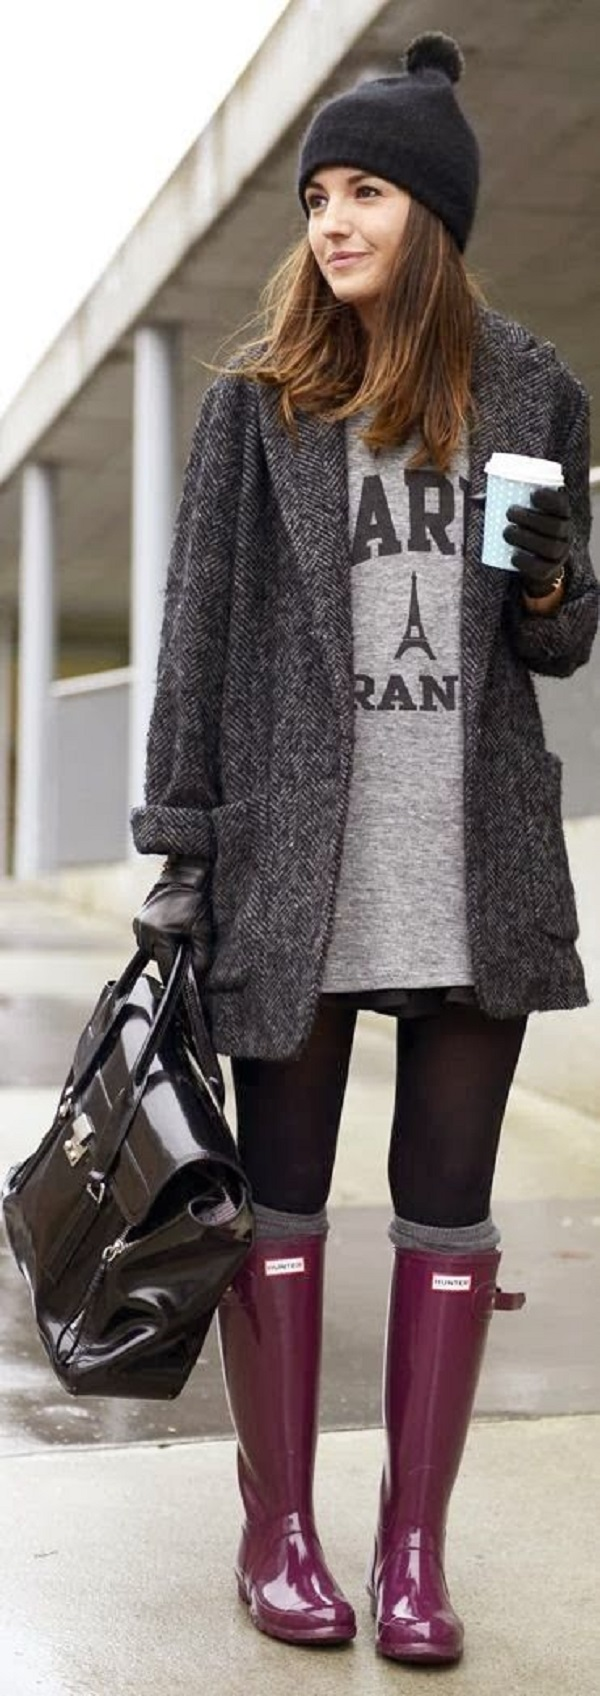 Warm-long-coat-with-grey-sweater-Hunter-purple-boots-and-pure-black-leather-handbag.-I-call-that-Winter-casual1